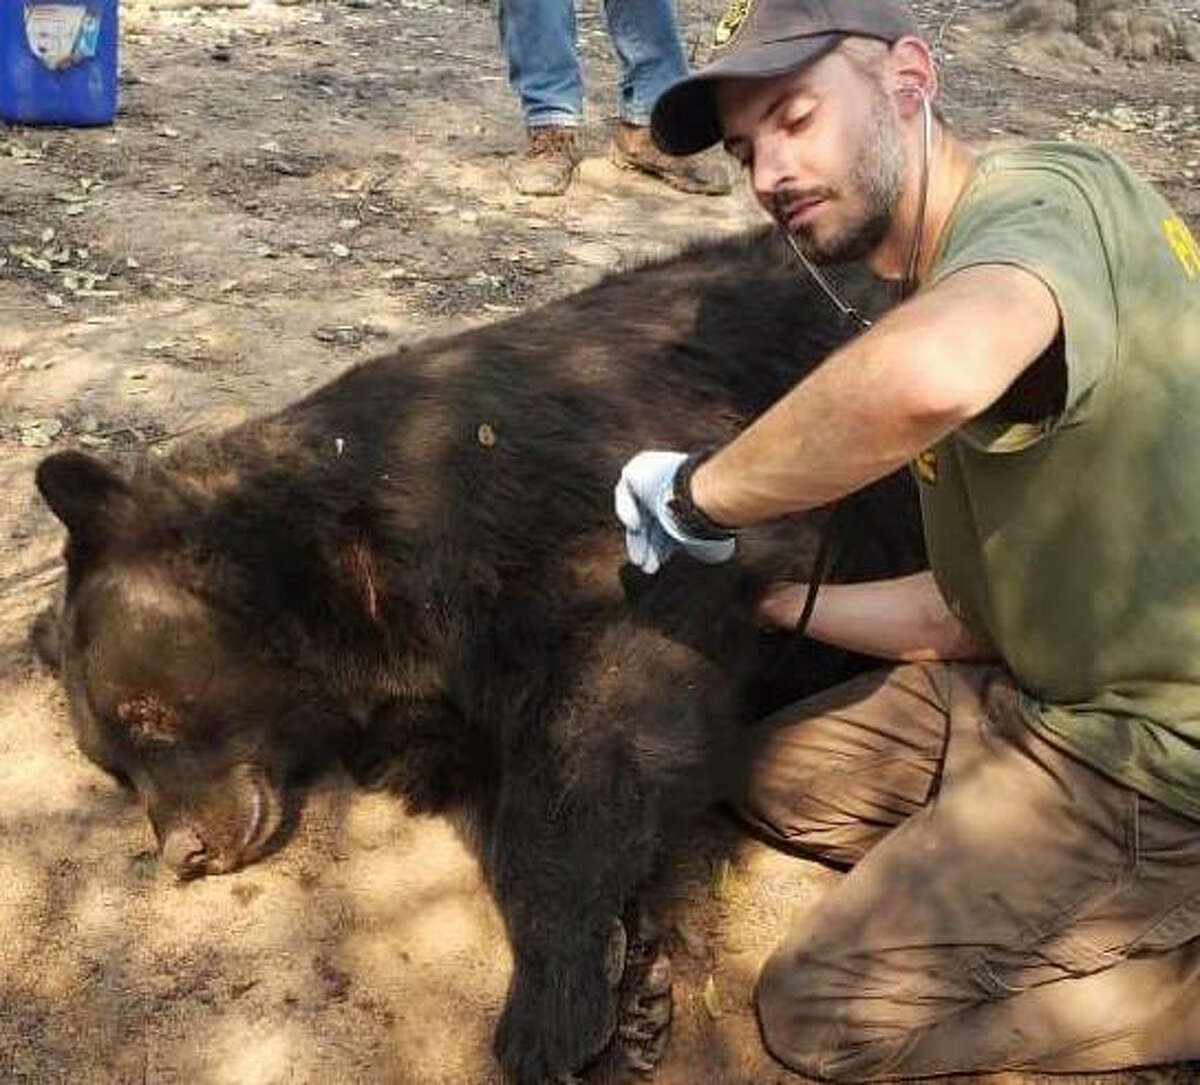 A California Department of Fish and Wildlife officer checks the heart rate of a tranquilized black bear that was injured in the Zogg Fire burning in Shasta and Tehama counties on Sept. 30.